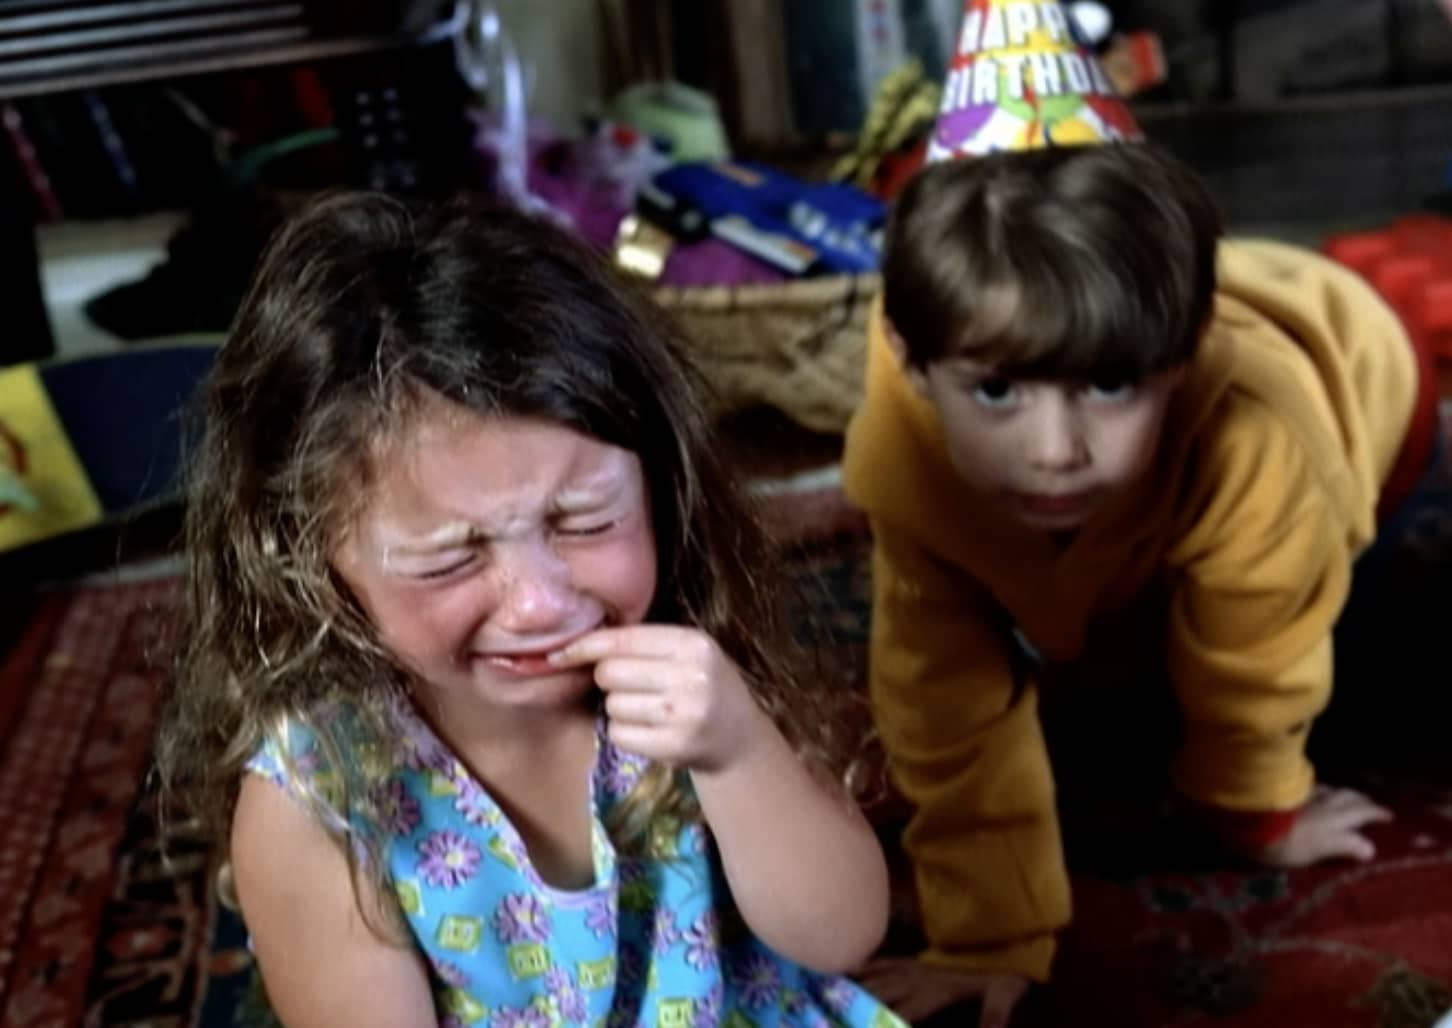 Making kids cry for Microsoft's UltimateTV.